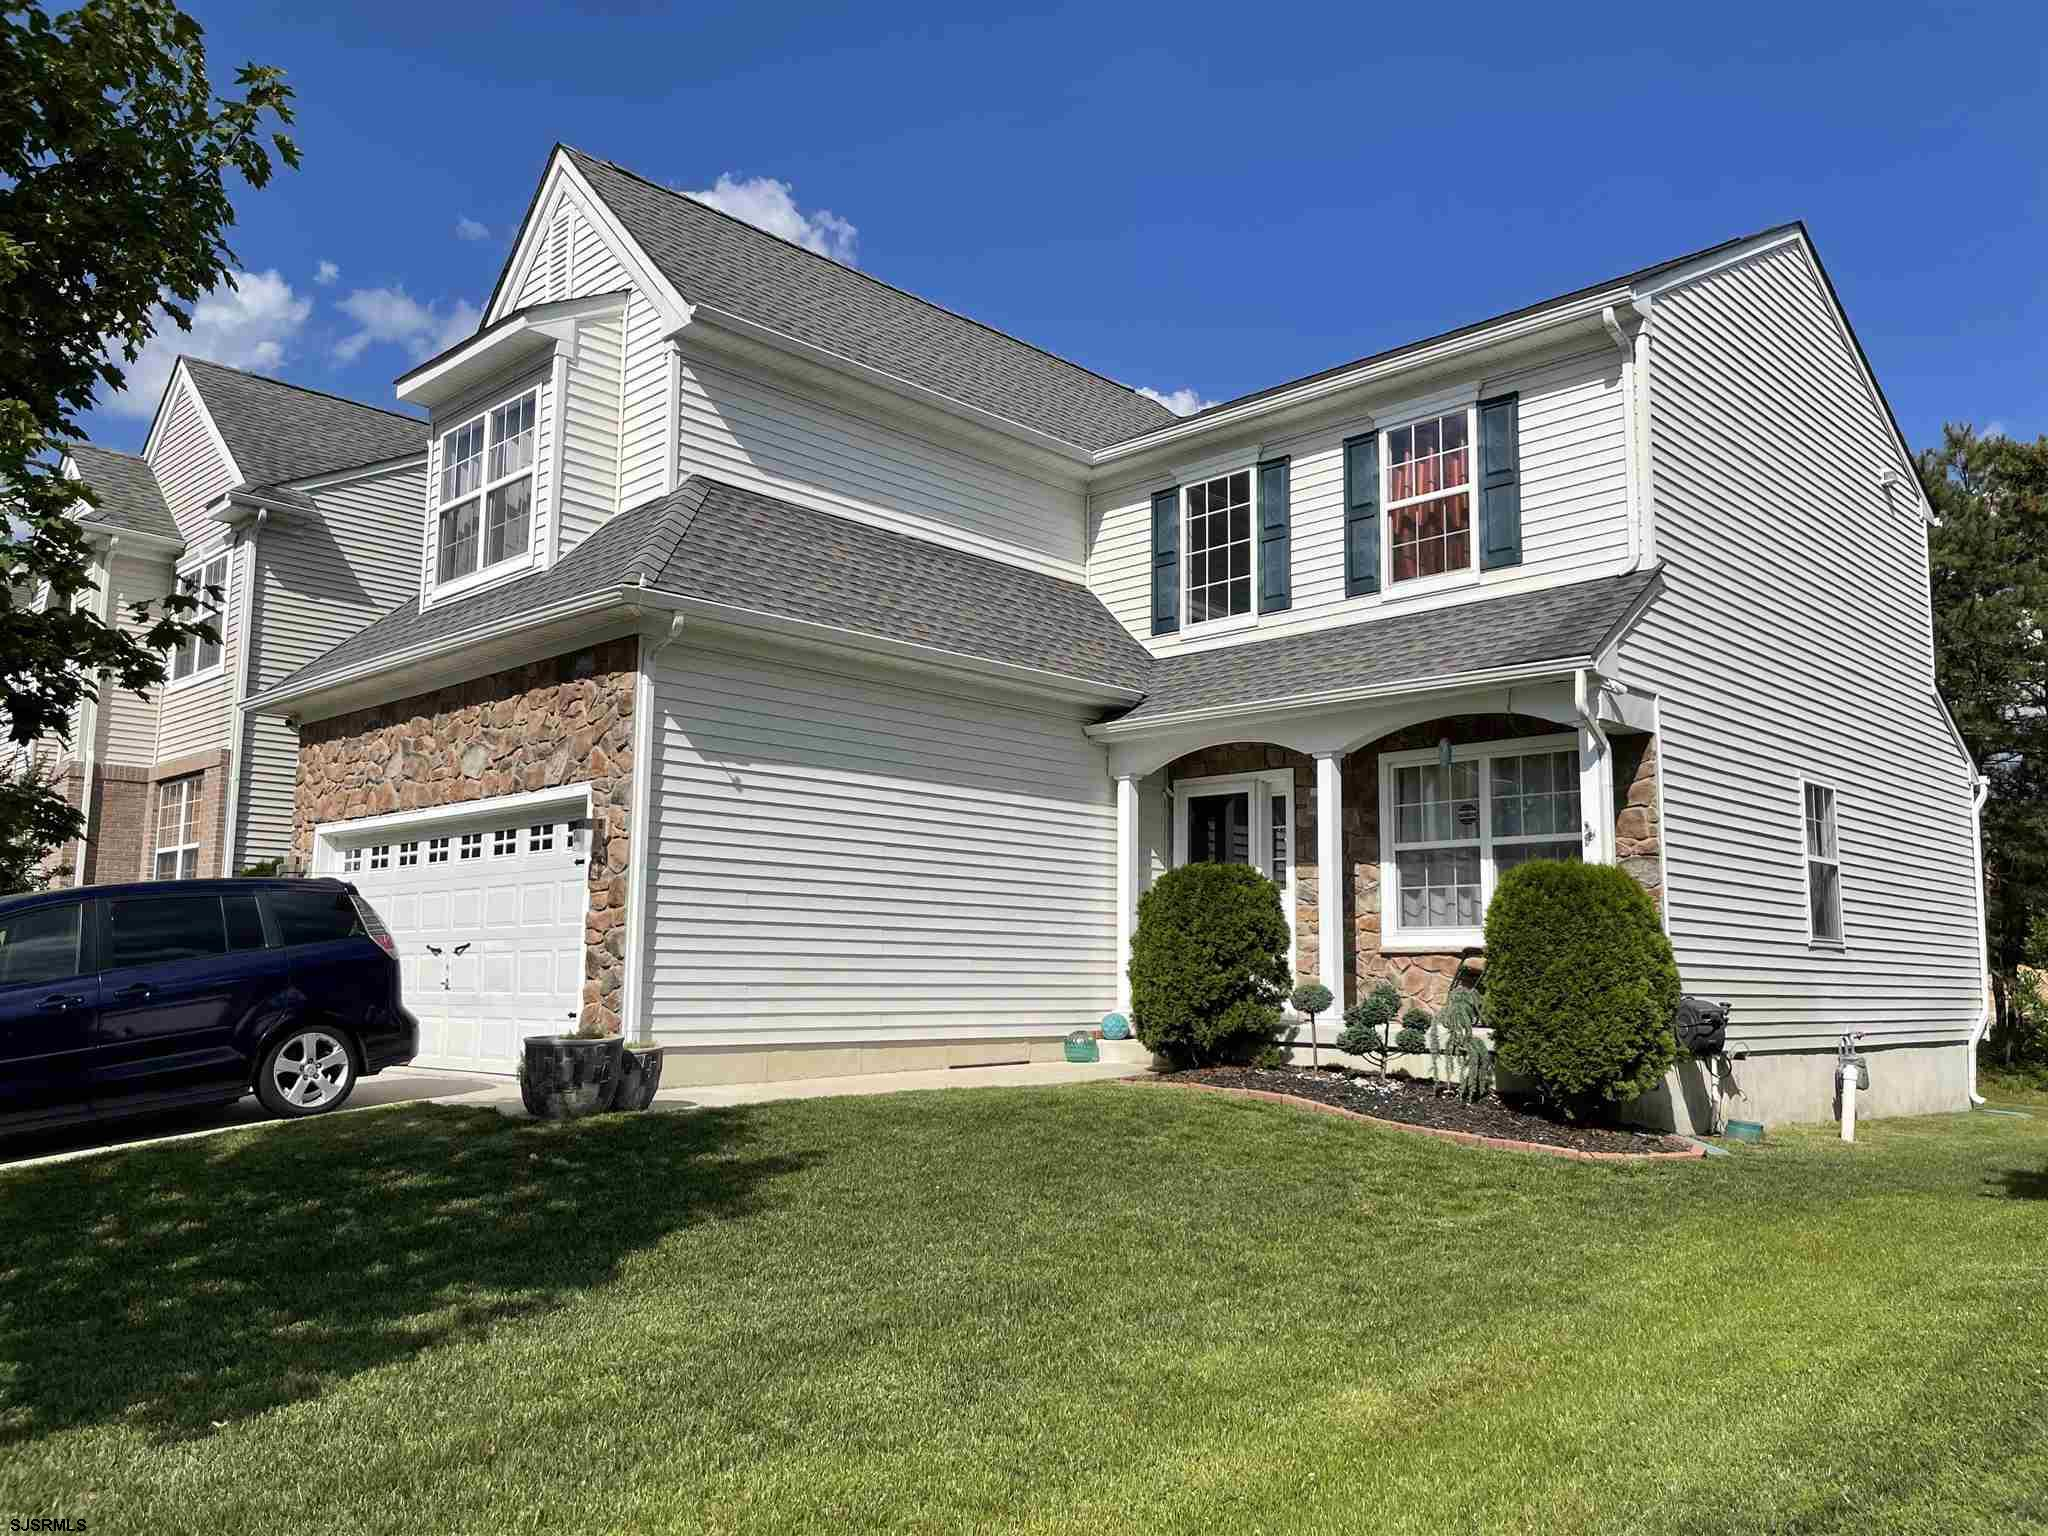 Amazing home!! 4 bedroom 2.5 baths, you must see this one !! full finished basement/family room/livi